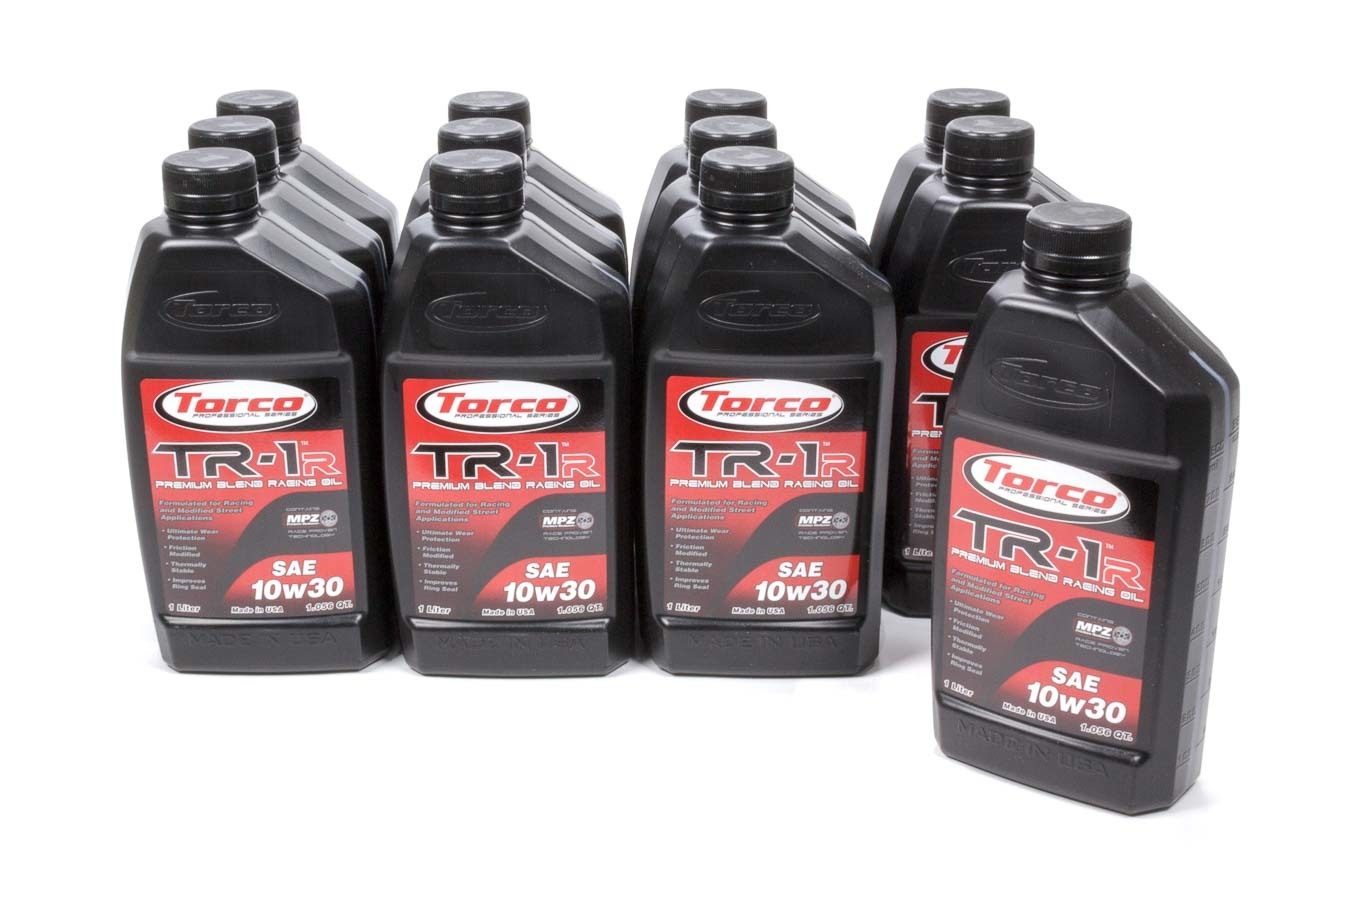 TORCO A141030C TR-1R Racing Oil 10w30 Case 12x1-Liter